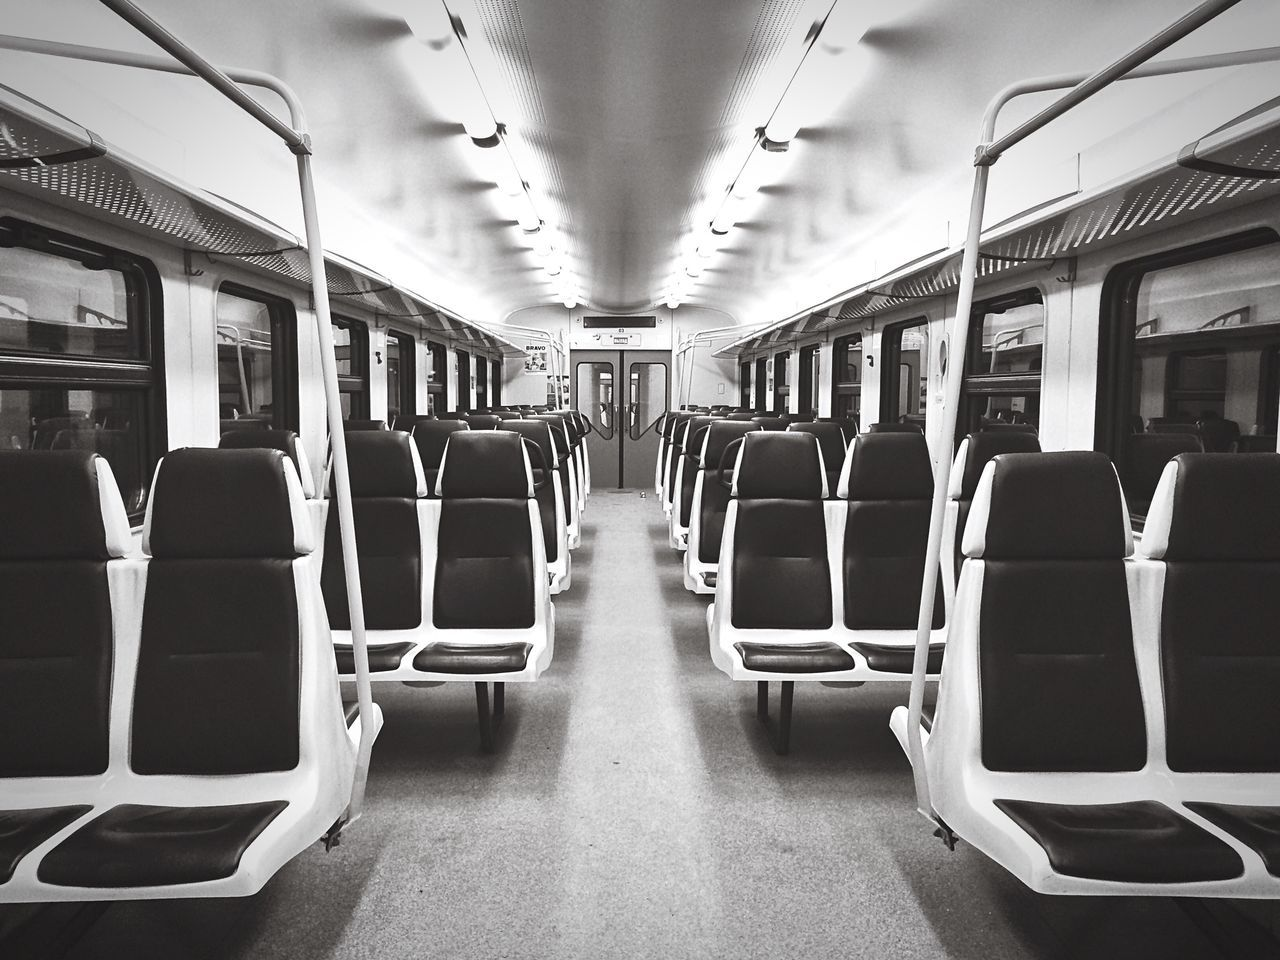 Empty Empty Places Empty Chairs No People Seats Train Trains Train Ride Transportation Transport Blackandwhite Black And White Black & White Blackandwhite Photography Black&white Black And White Photography Monochrome Urbanphotography Symmetry Symmetrical Blackandwhitephotography Exceptional Photographs Let's Go. Together.